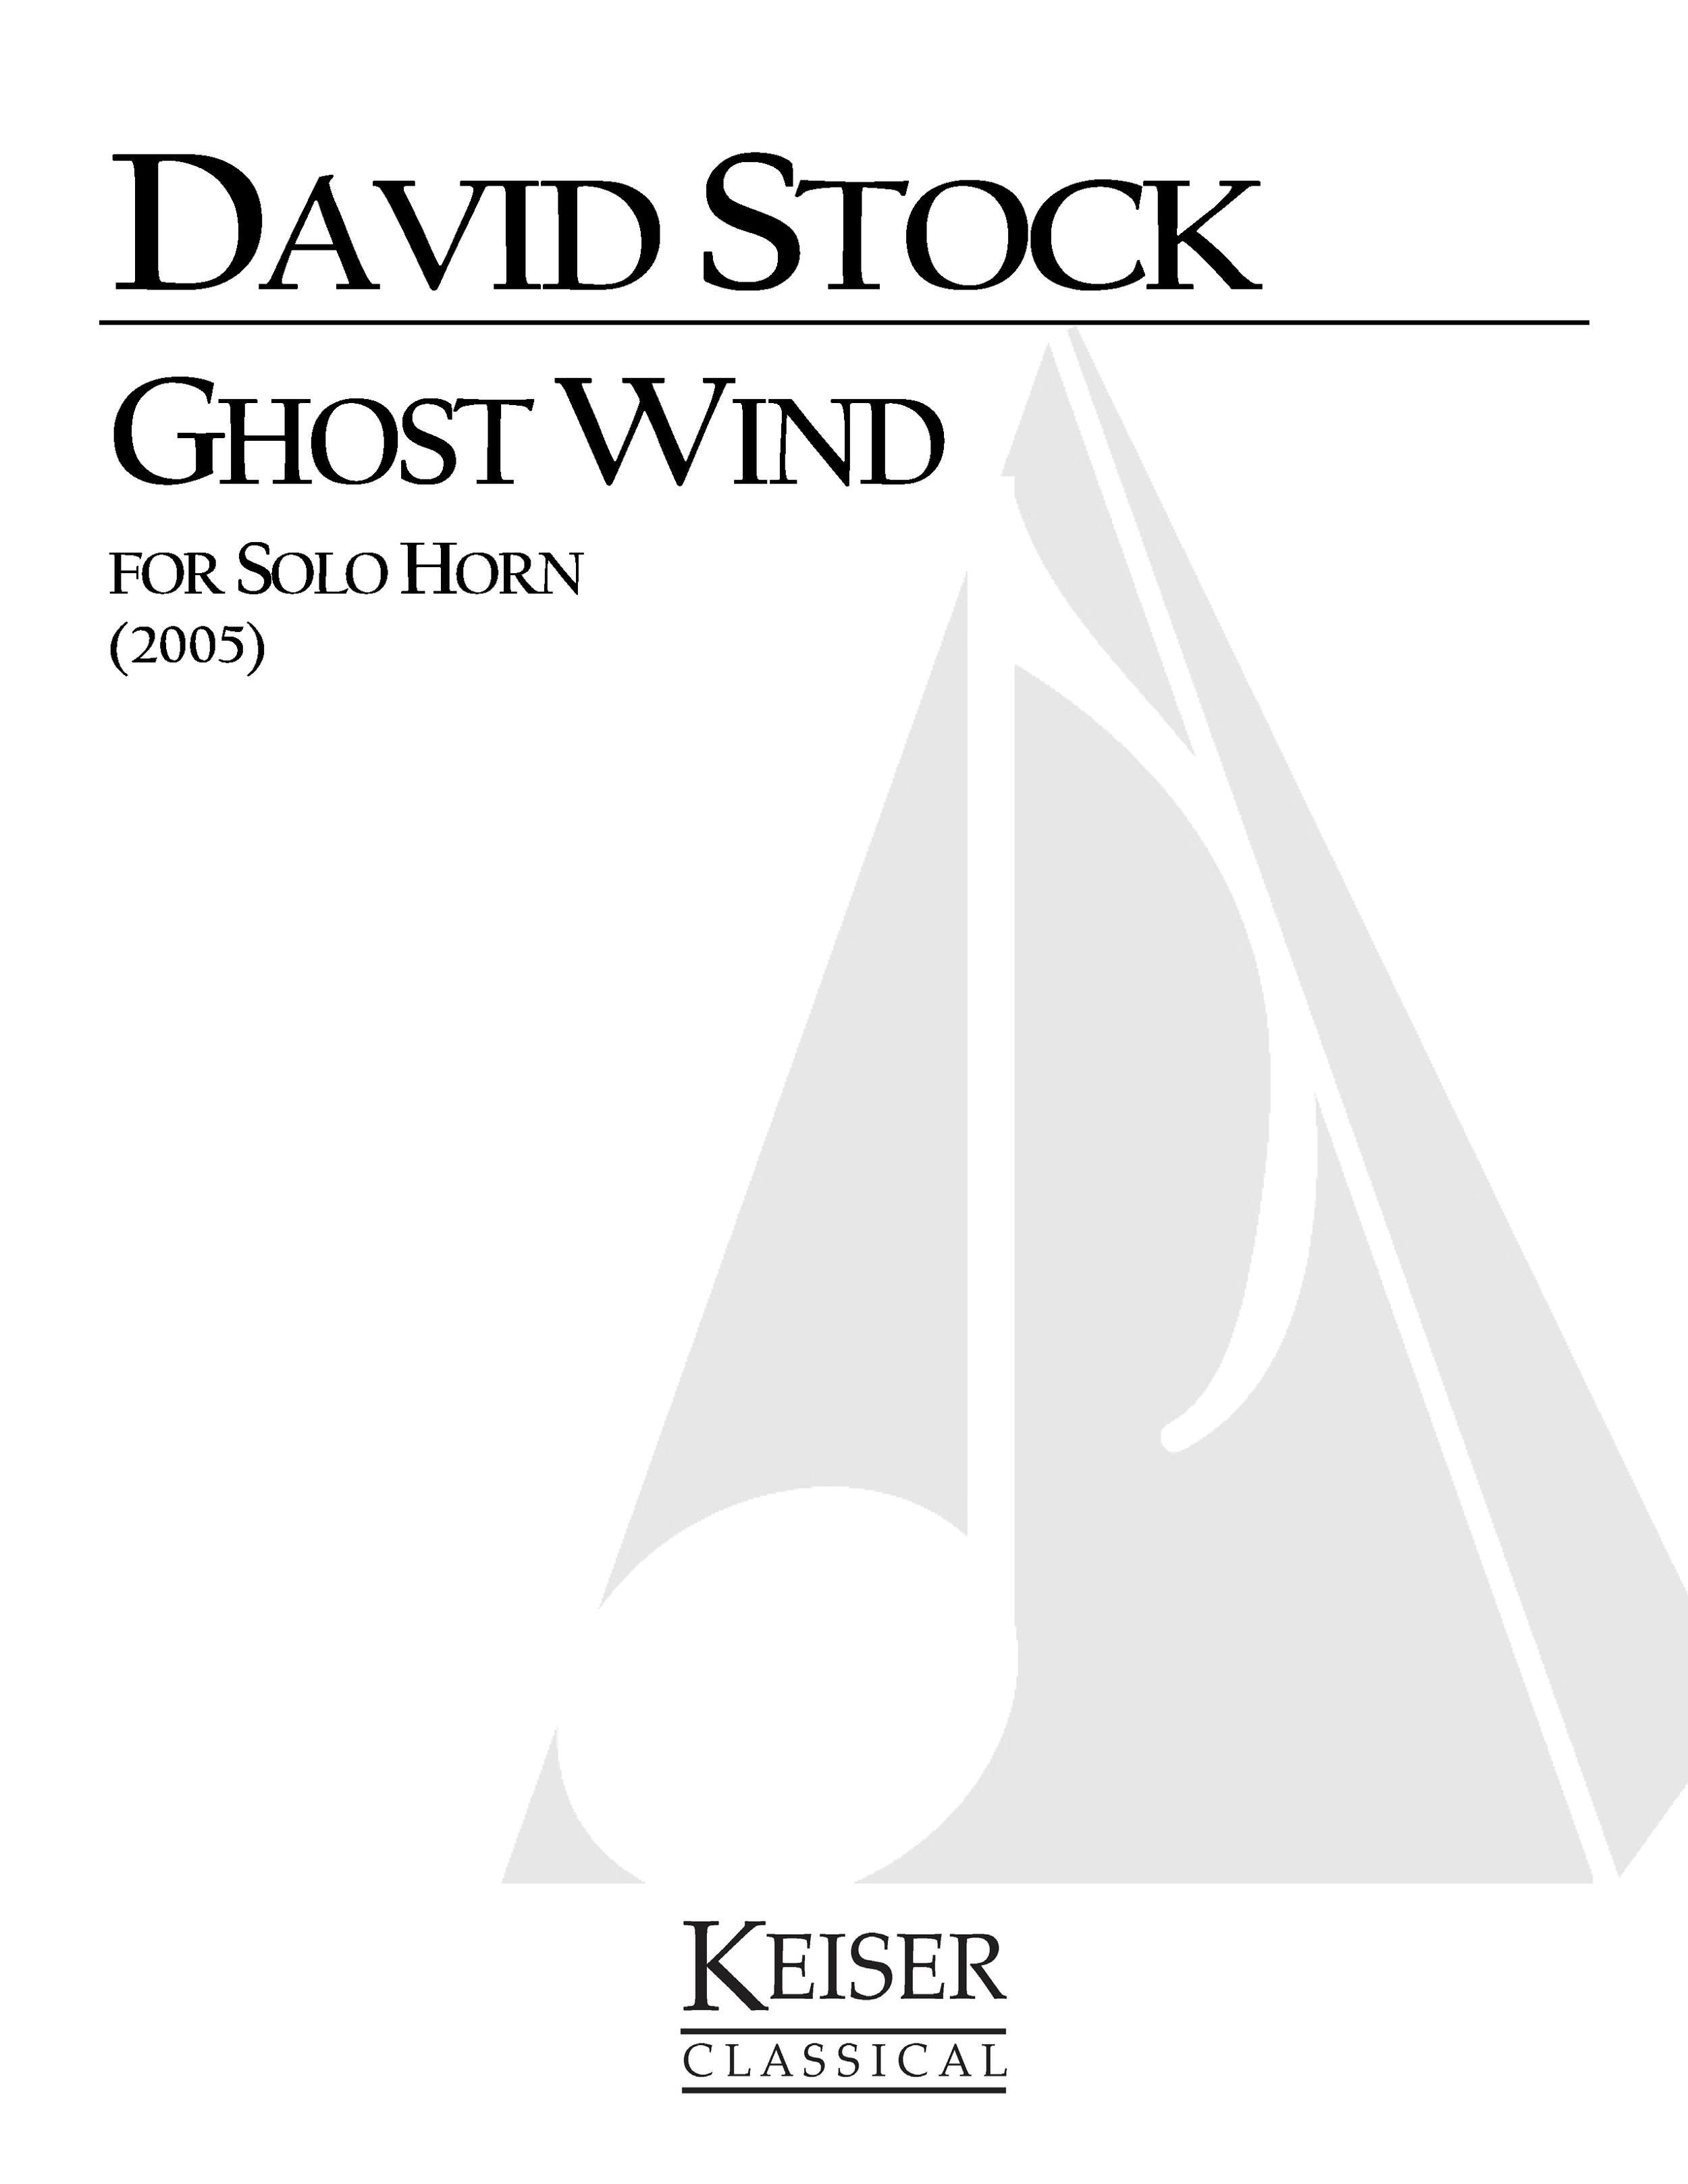 Ghost Wind (2005)  - Horn soloRent/Buy: Keiser Music